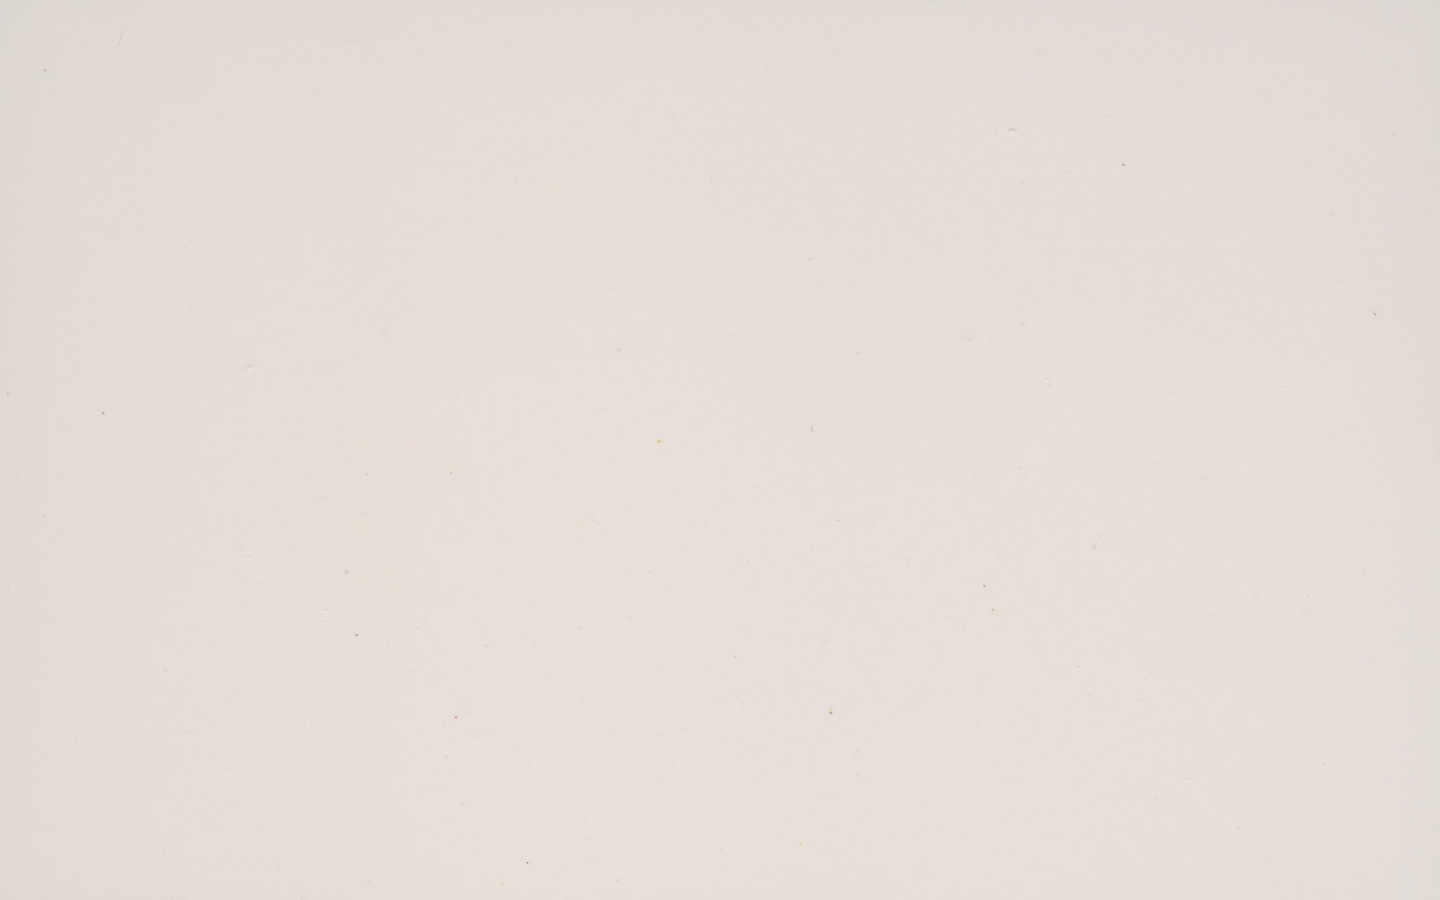 Download solid light grey background solid light grey - Solid light gray wallpaper ...